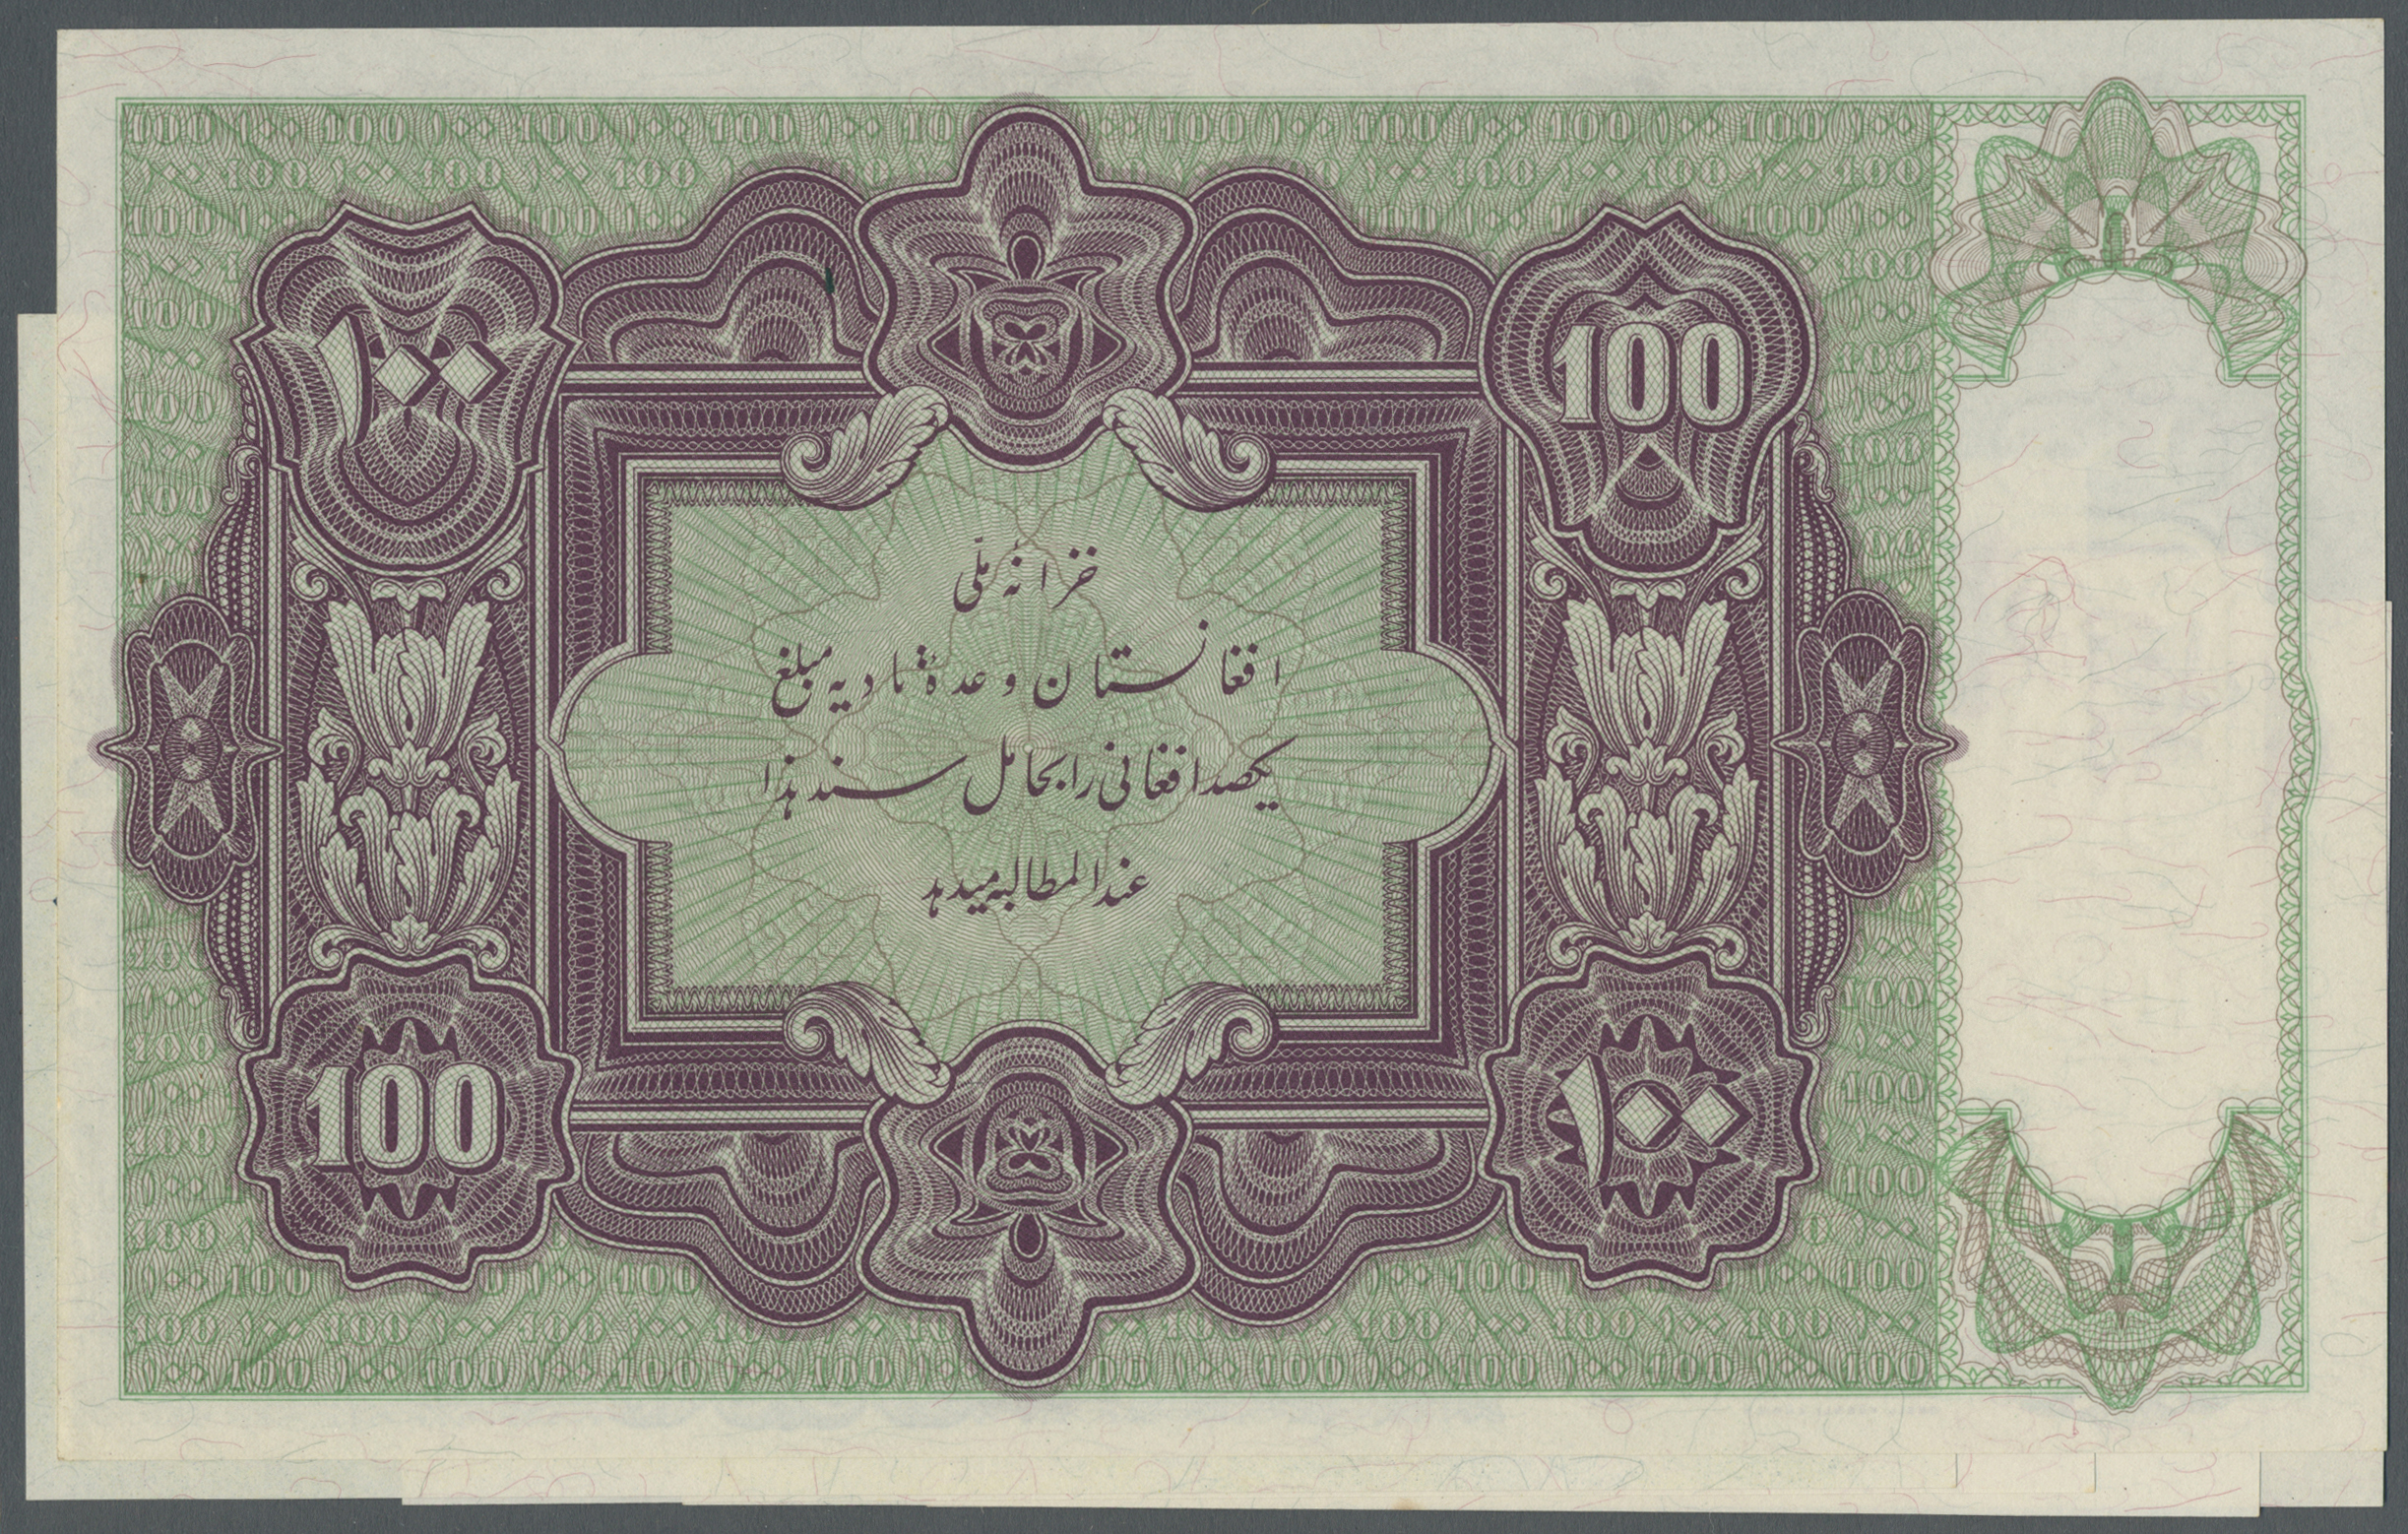 Lot 5 - Afghanistan | Banknoten  -  Auktionshaus Christoph Gärtner GmbH & Co. KG Banknotes Worldwide Auction #39 Day 1